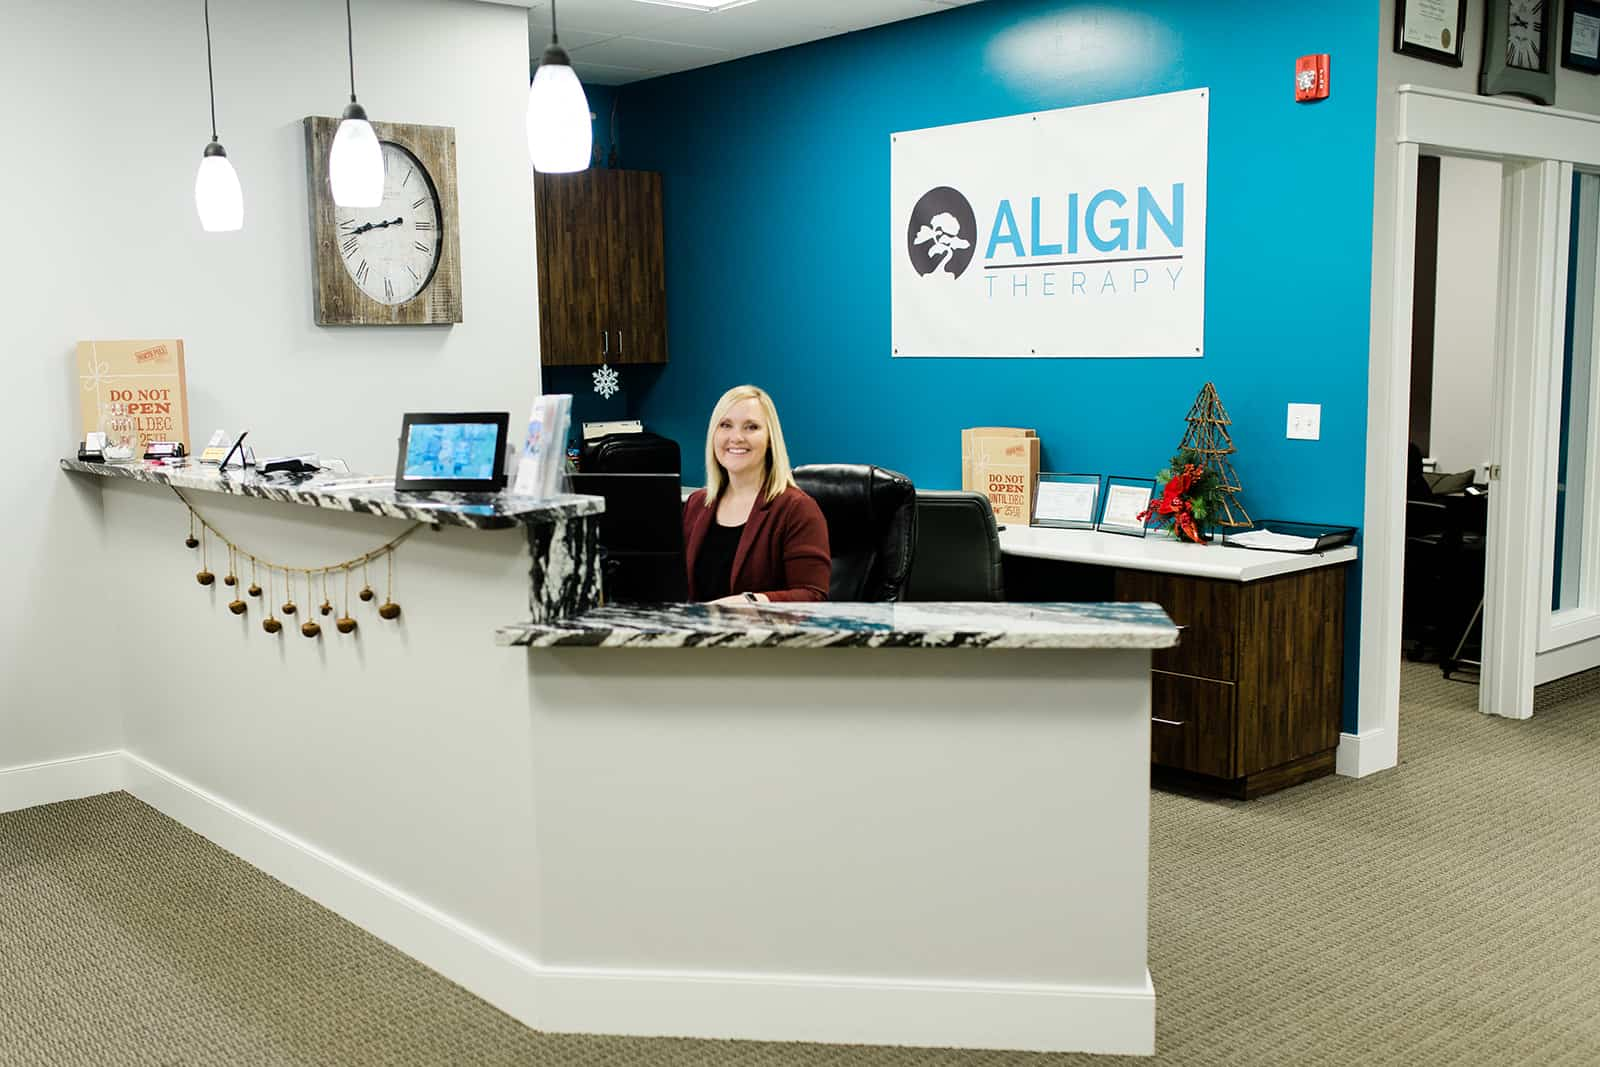 Reception area at Align Therapy in Lehi Utah